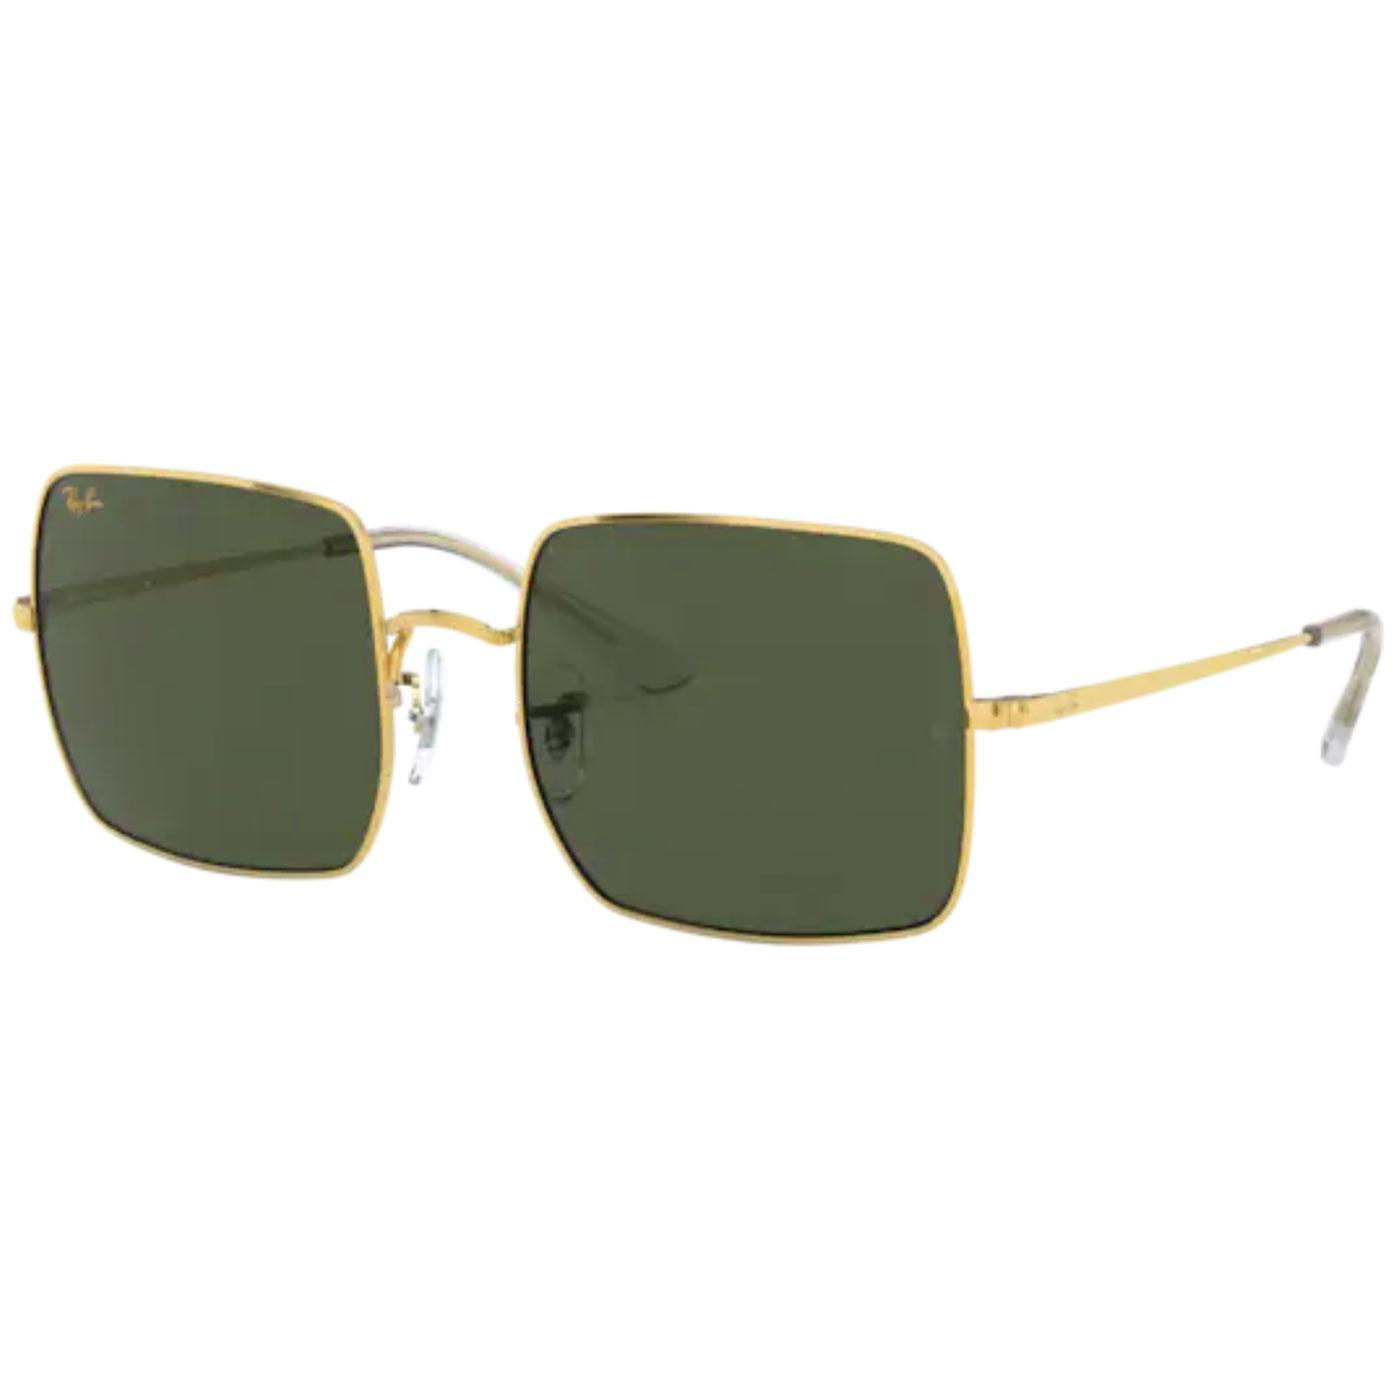 RAY-BAN RB1971 Legend Gold G-15 Square Sunglasses